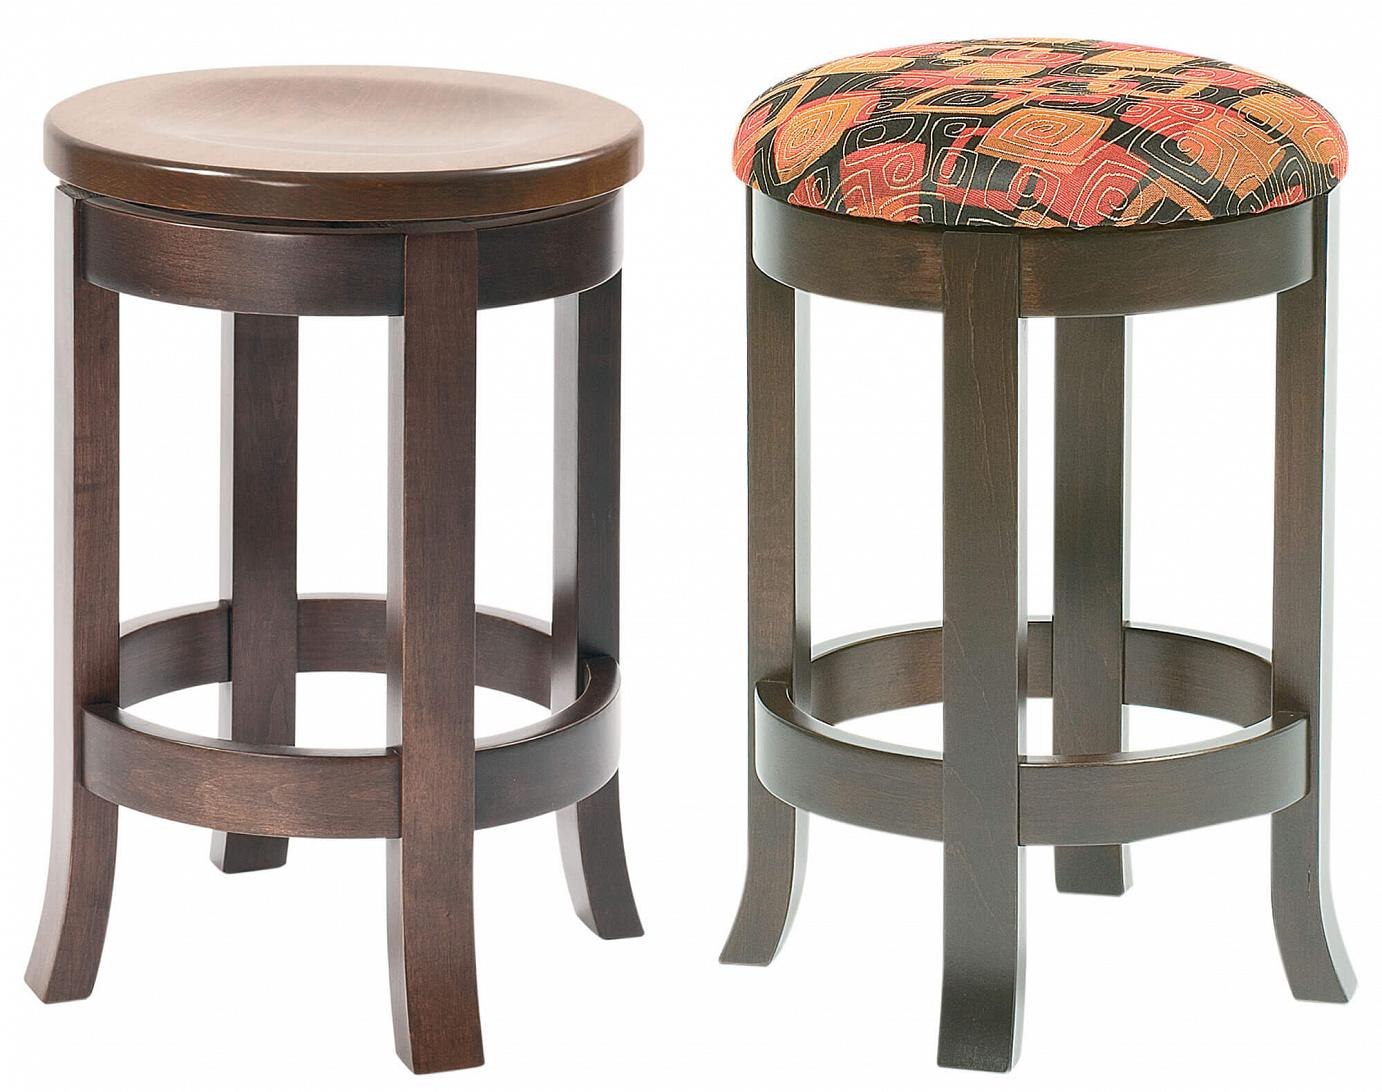 Marvelous Belmont Barstool R H Yoder Unemploymentrelief Wooden Chair Designs For Living Room Unemploymentrelieforg